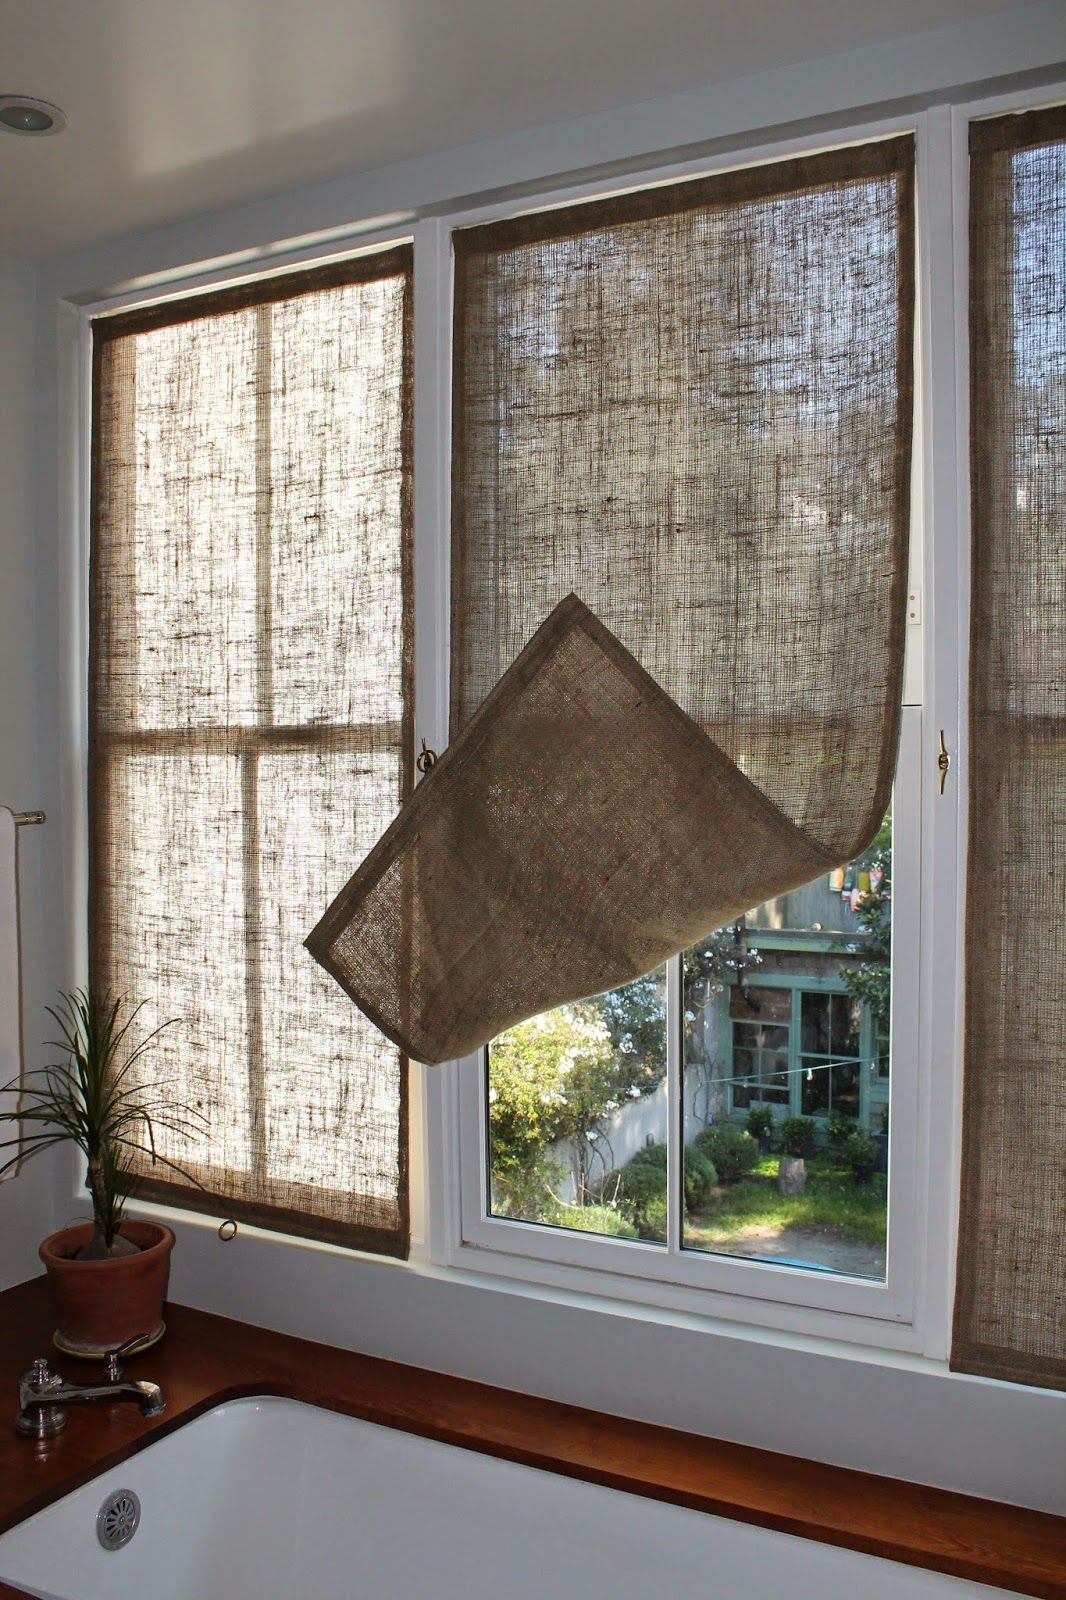 House window shade design  the shingled house  burlap window shades  home is where the heart